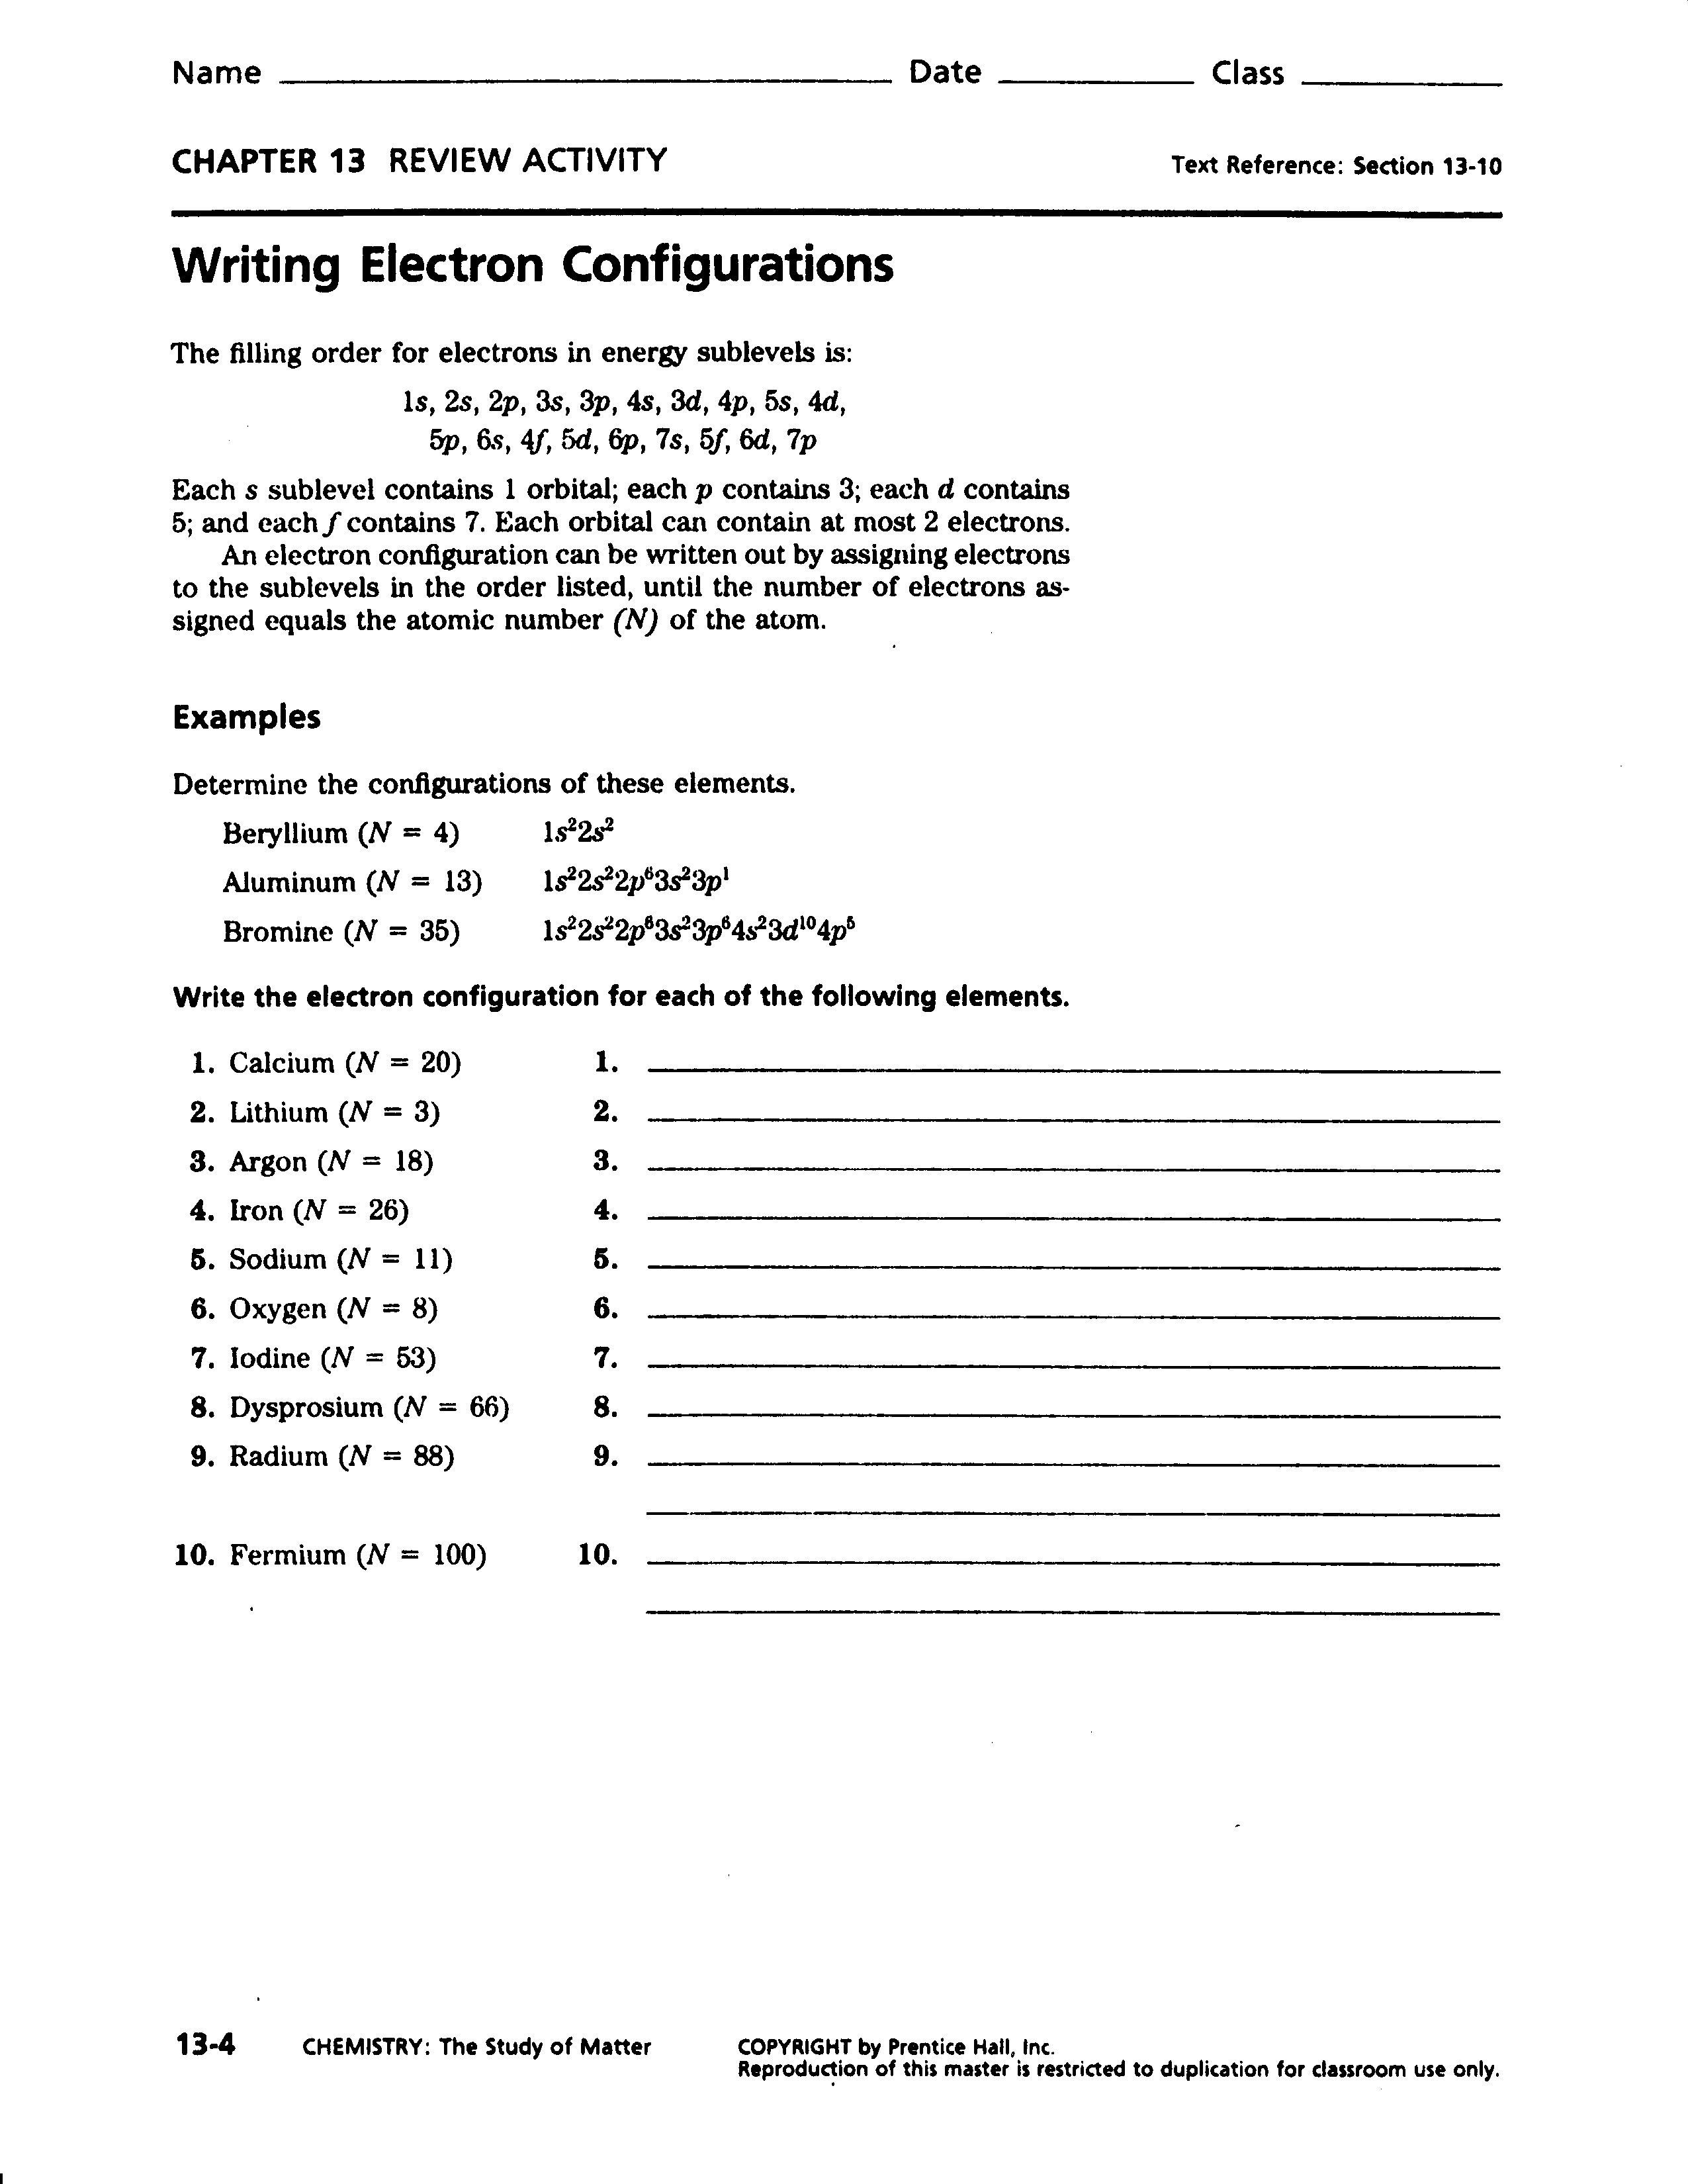 Electron Configurations And The Periodic Table Practice